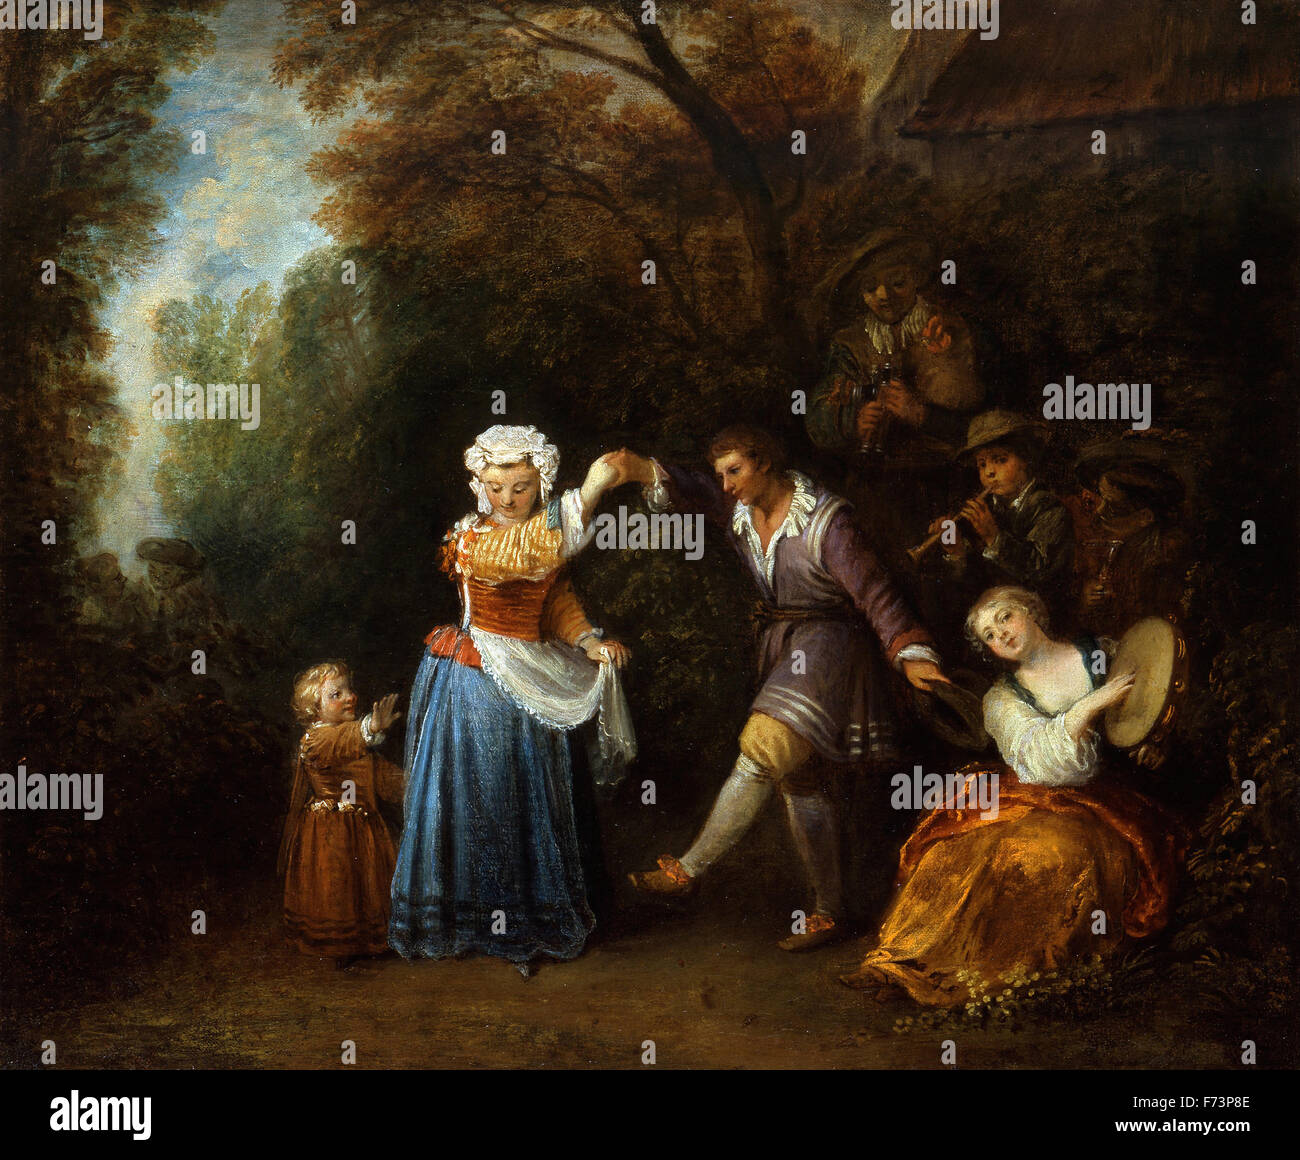 Jean-Antoine Watteau - The Country Dance - Stock Image